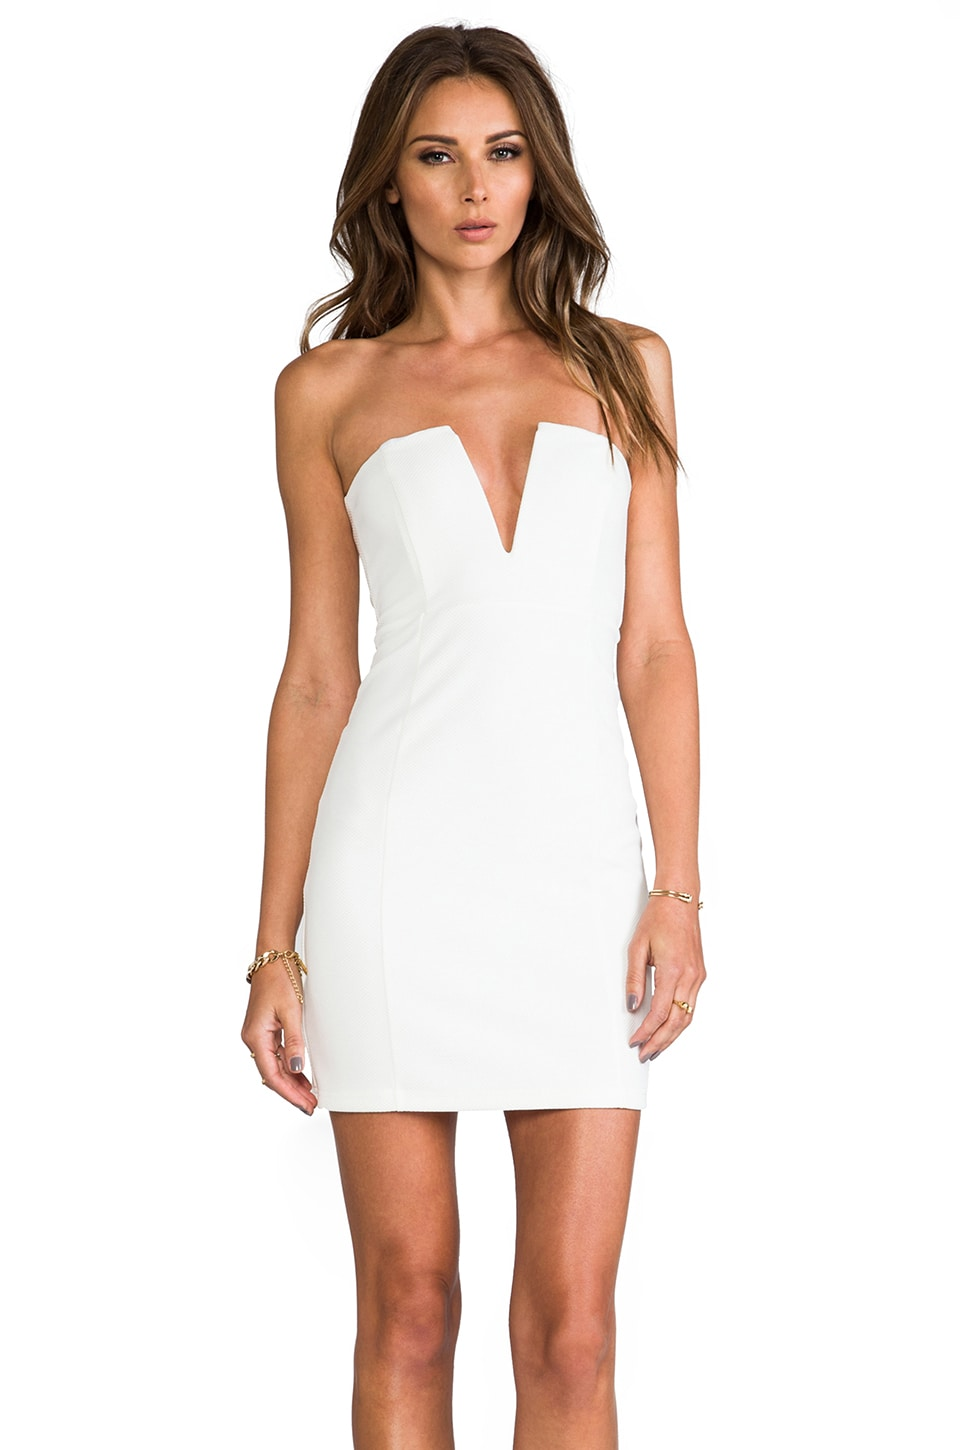 Nookie Rubix V-Front Bustier Dress in White